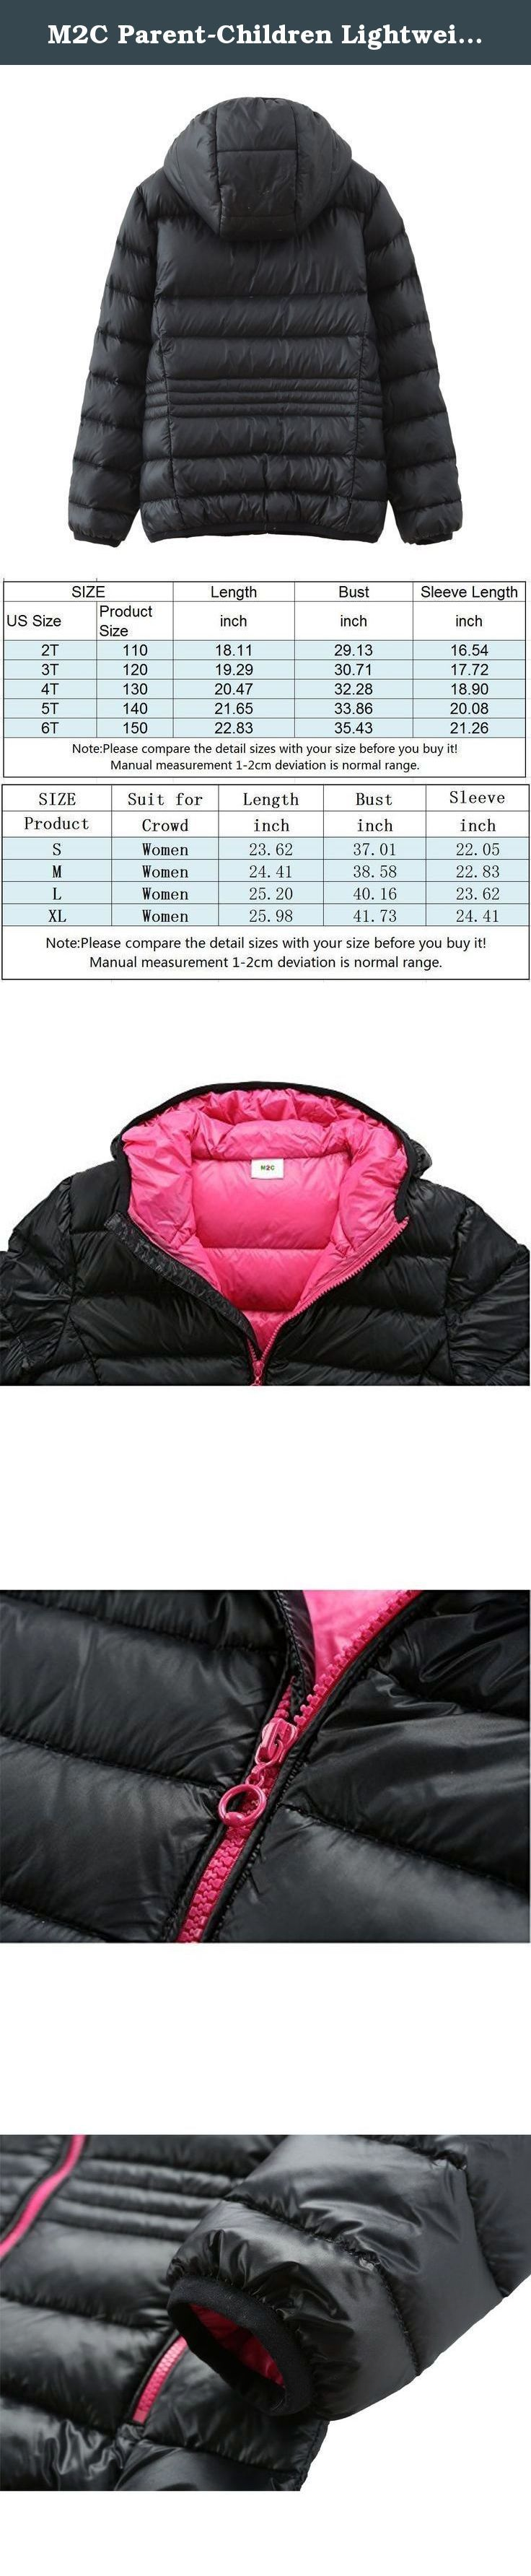 M2C Parent-Children Lightweight Puffer Hoodie Down Jackets Warm Slim Fit Coat. M2C ultra-light premium duck down packable jacket, provide you with professional apparel products, fashionable and comfortable. Brand:M2C Material:100% nylon outer and 100% nylon lining Filling:80% white duck down. Package include:1 PC Jacket .